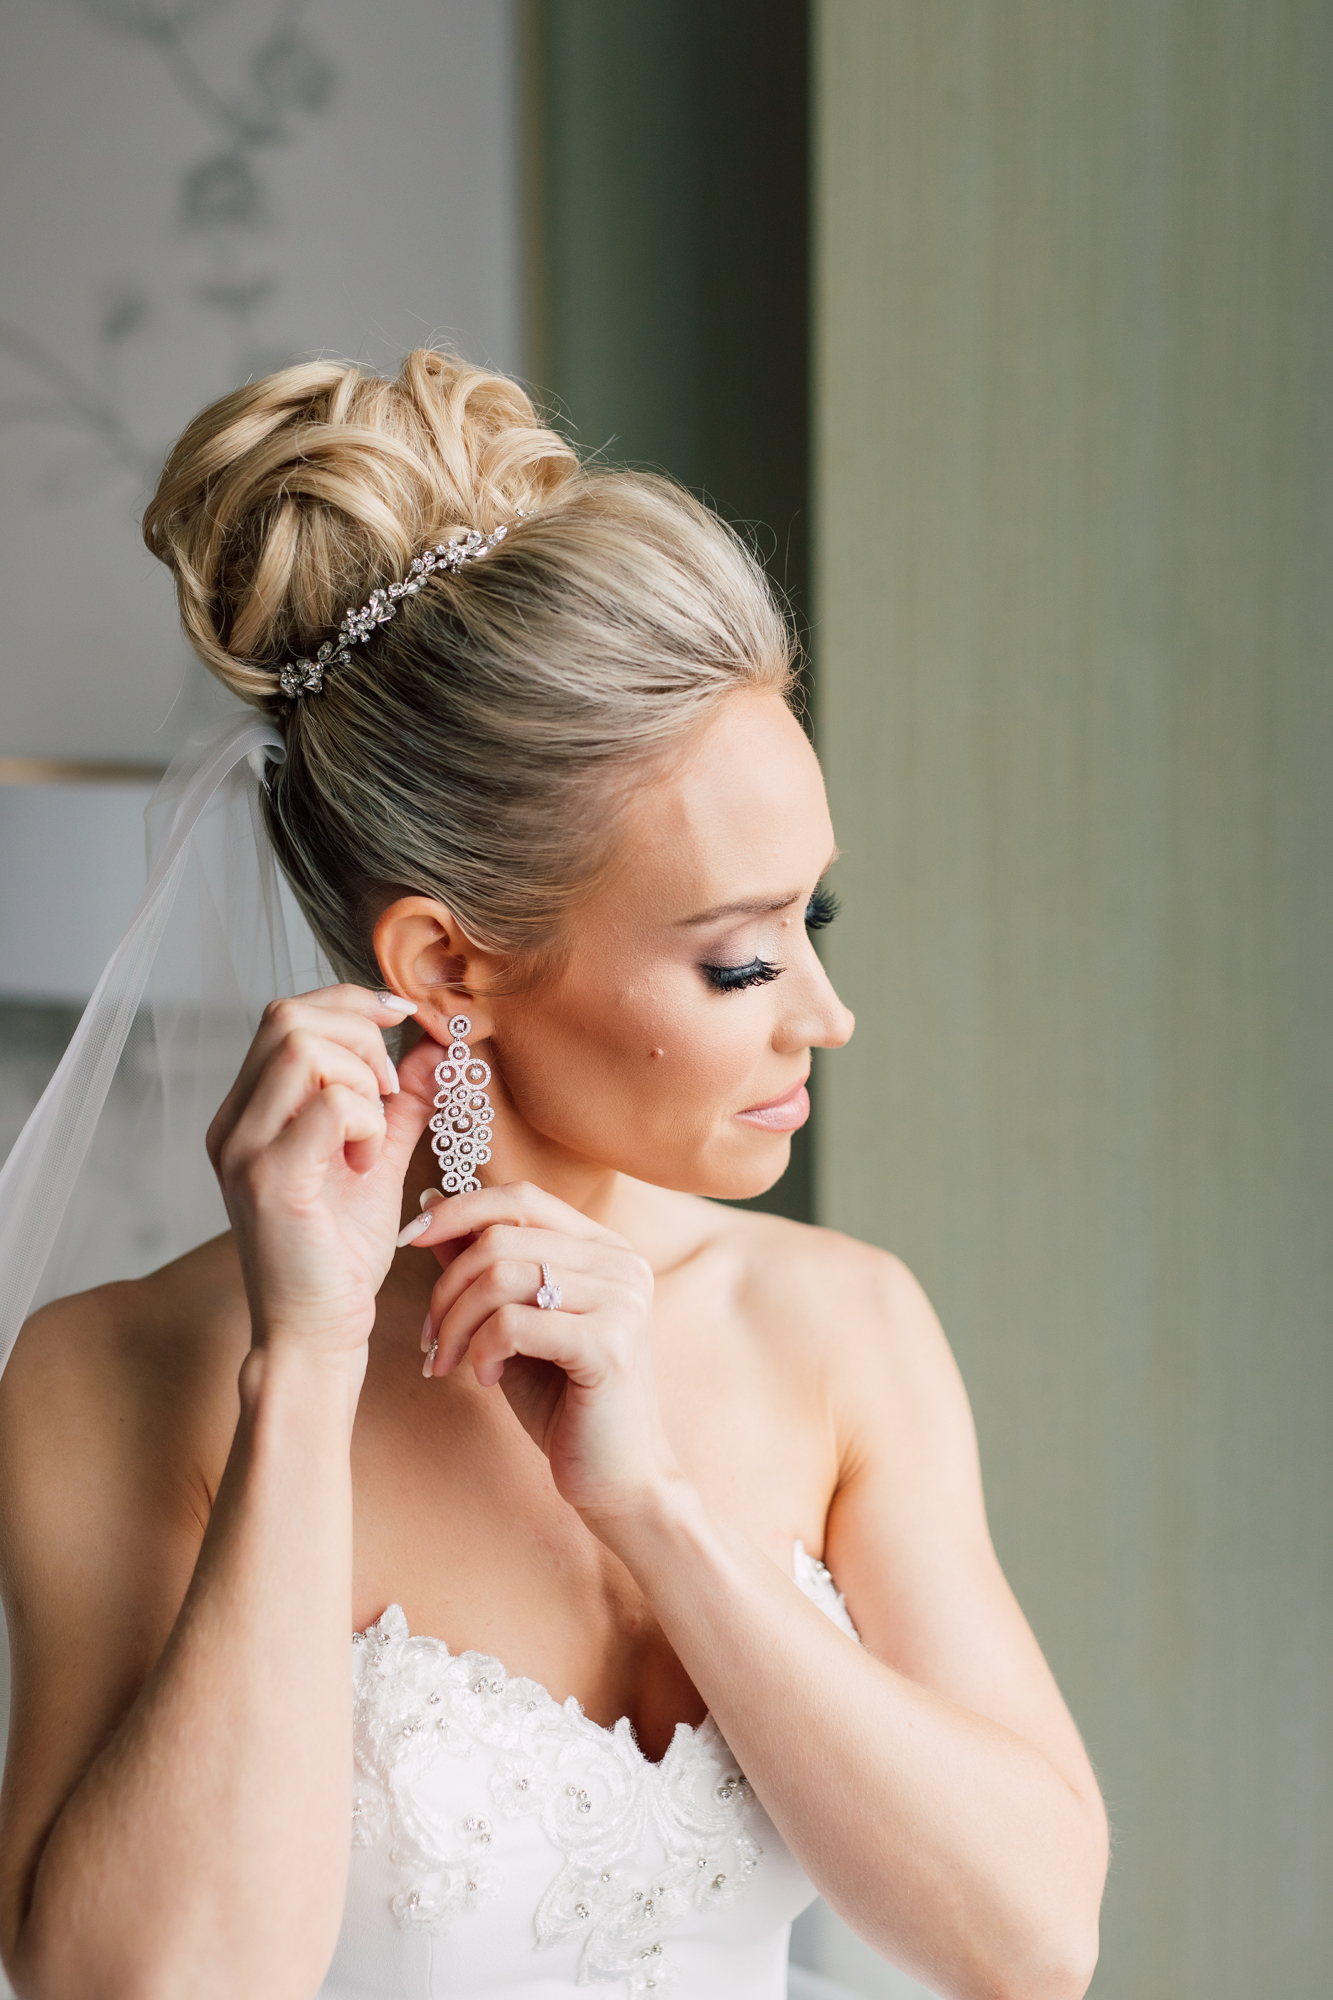 jen evoy bridal hair and makeup